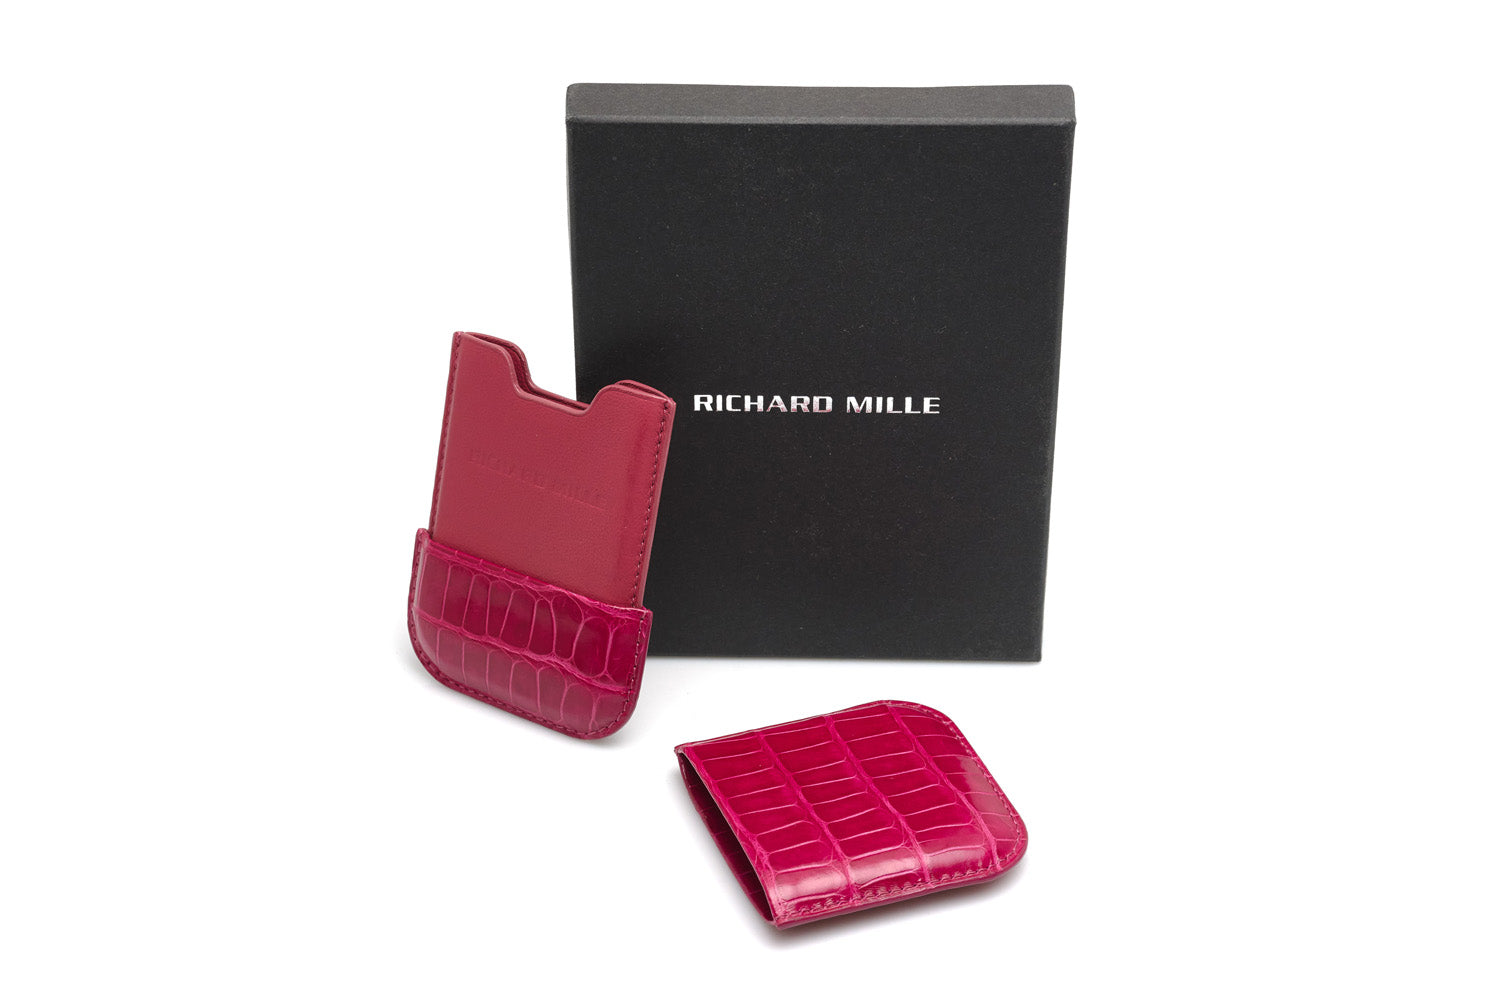 Richard Mille Crocodile Wallet